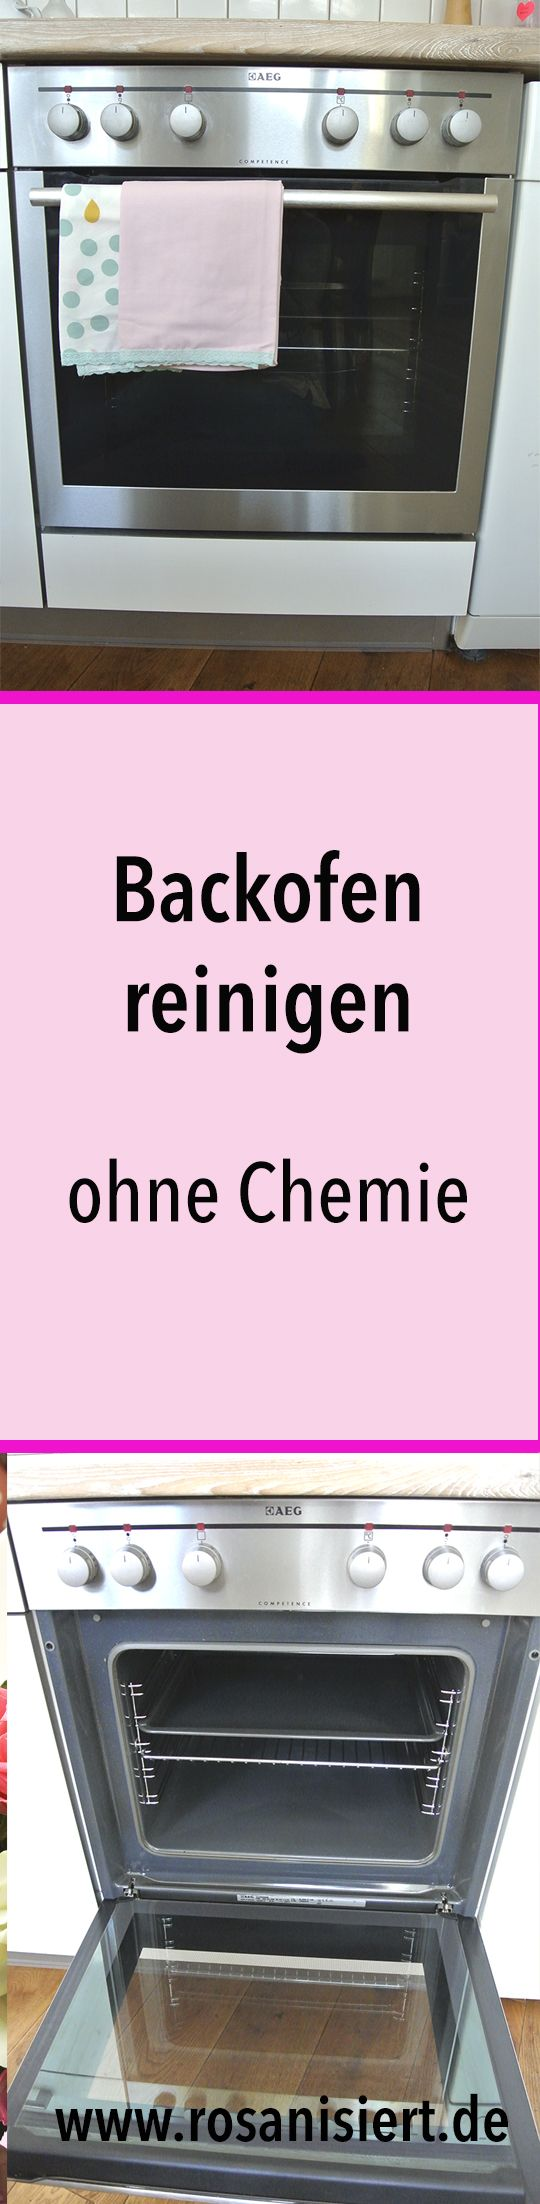 backofen reinigen ohne chemie so wird dein ofen strahlend sauber pinterest verkrustungen. Black Bedroom Furniture Sets. Home Design Ideas